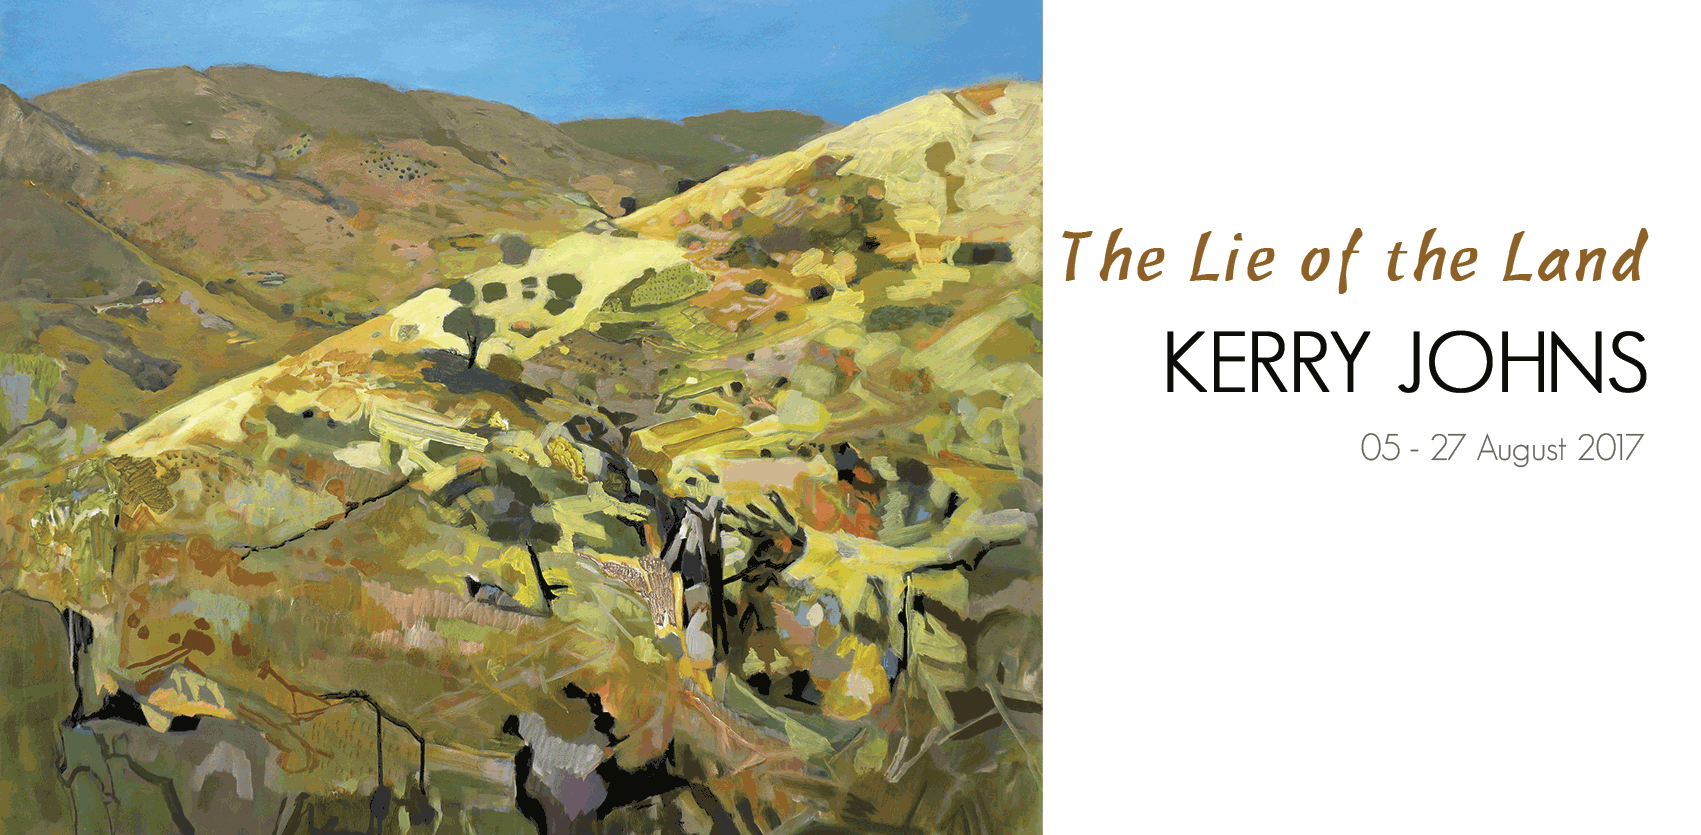 View Exhibition at Artsite Gallery, 05 - 27 August 2017: The Lie of the Land - Kerry Johns